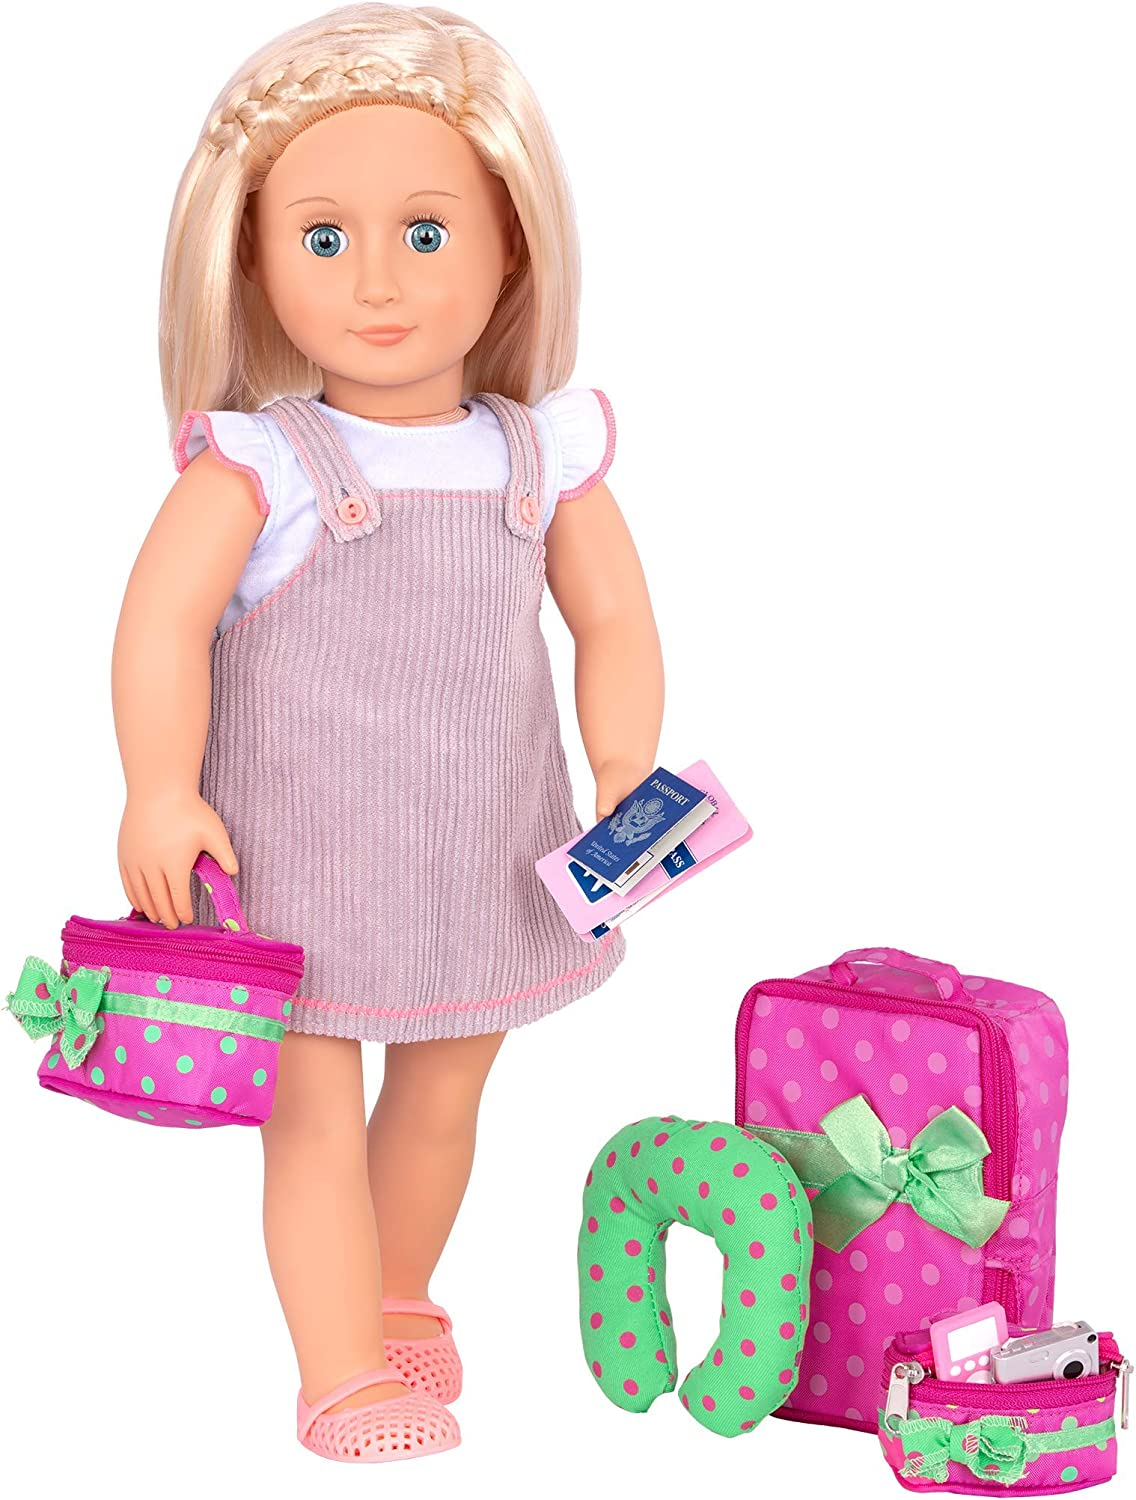 "Our Generation by Battat- Luggage & Travel Set For 18"" Dolls- Toys, Clothes & Accessories For Ages 3 Years Old & Up"